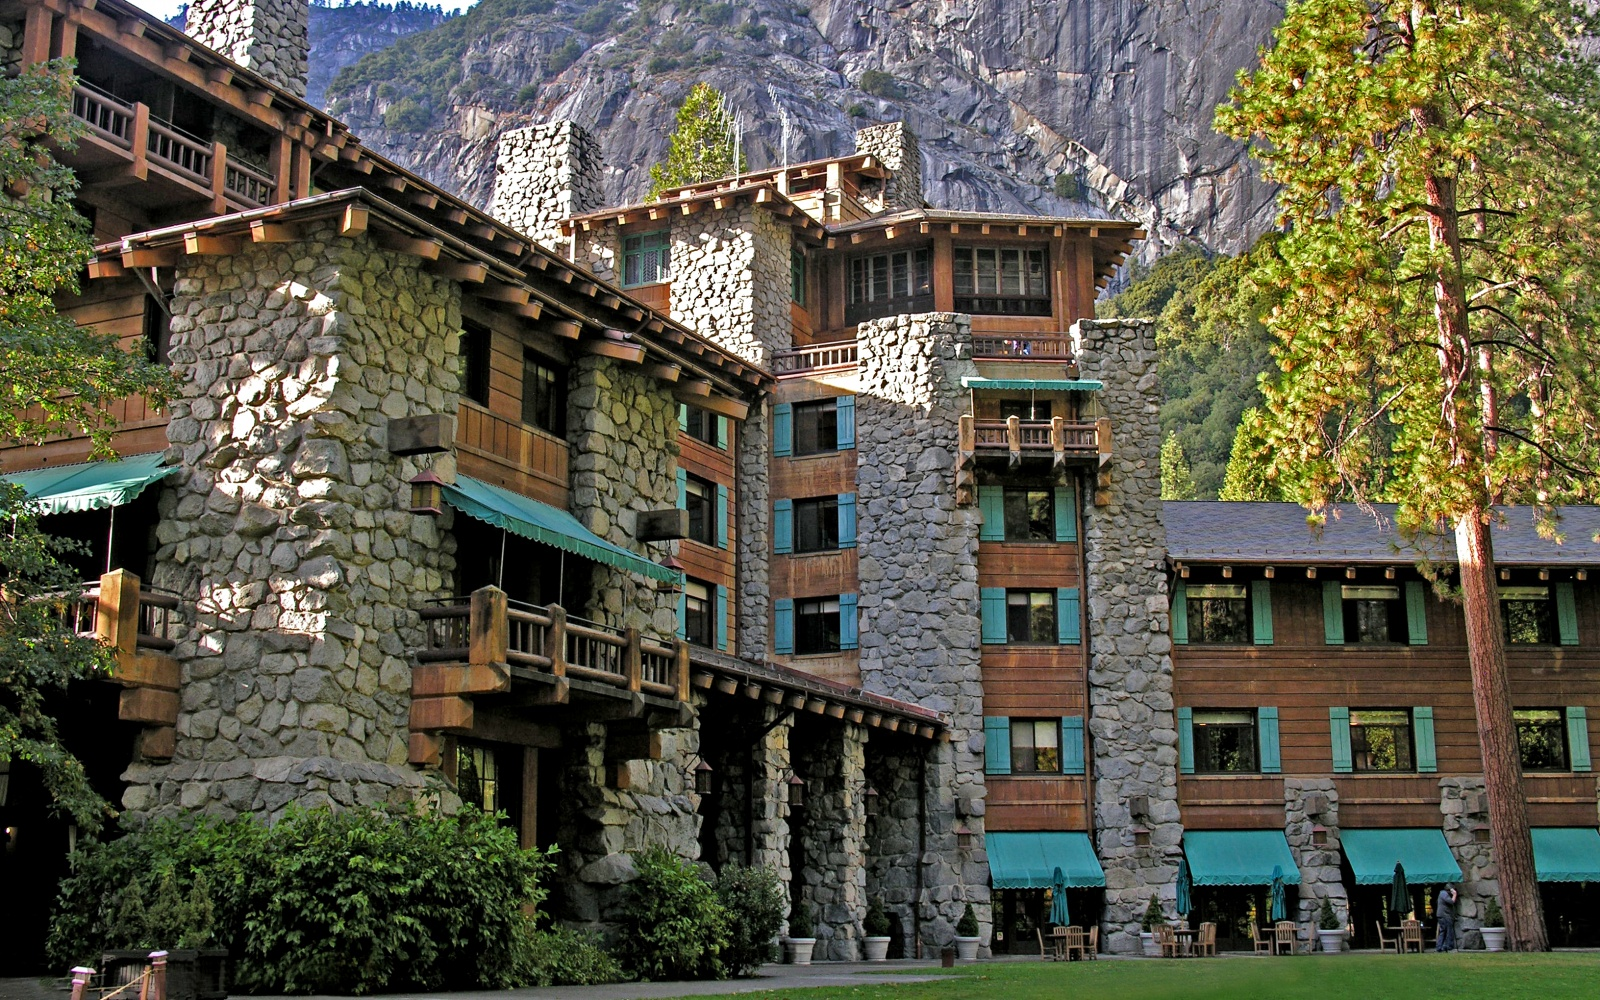 The Majestic Yosemite Hotel, Yosemite National Park, CA